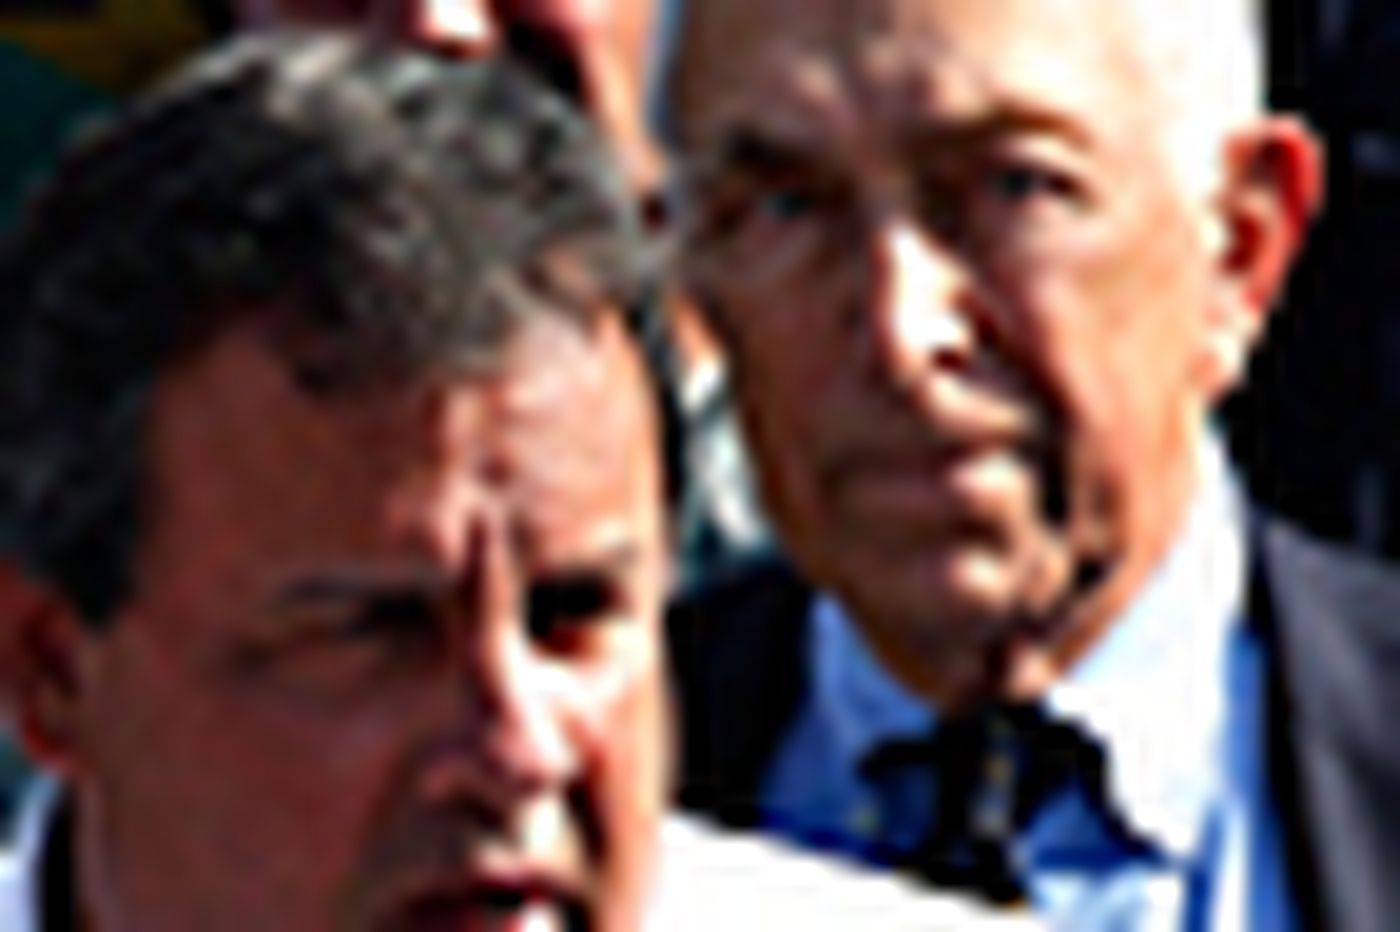 New Jersey's Lautenberg in no rush to yield his Senate seat